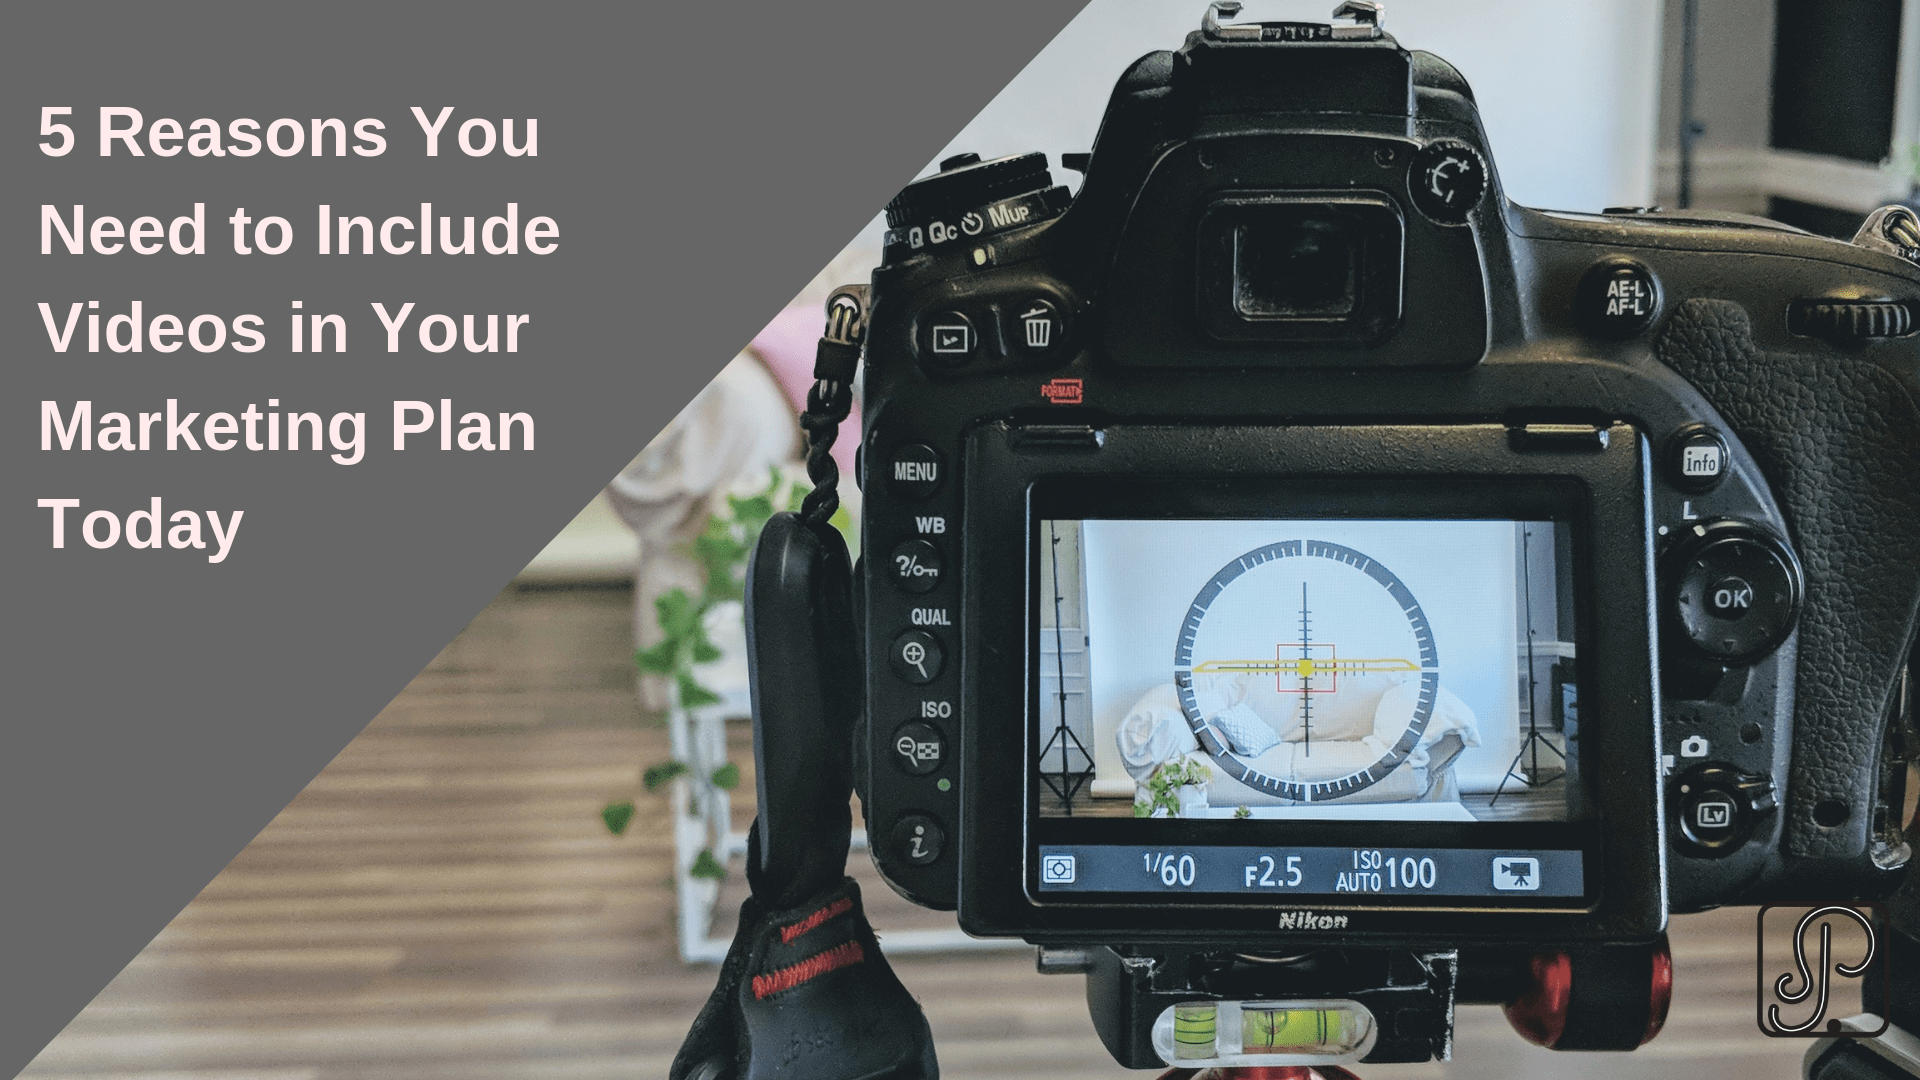 5 Reasons You Need to Include Videos in Your Marketing Plan Today